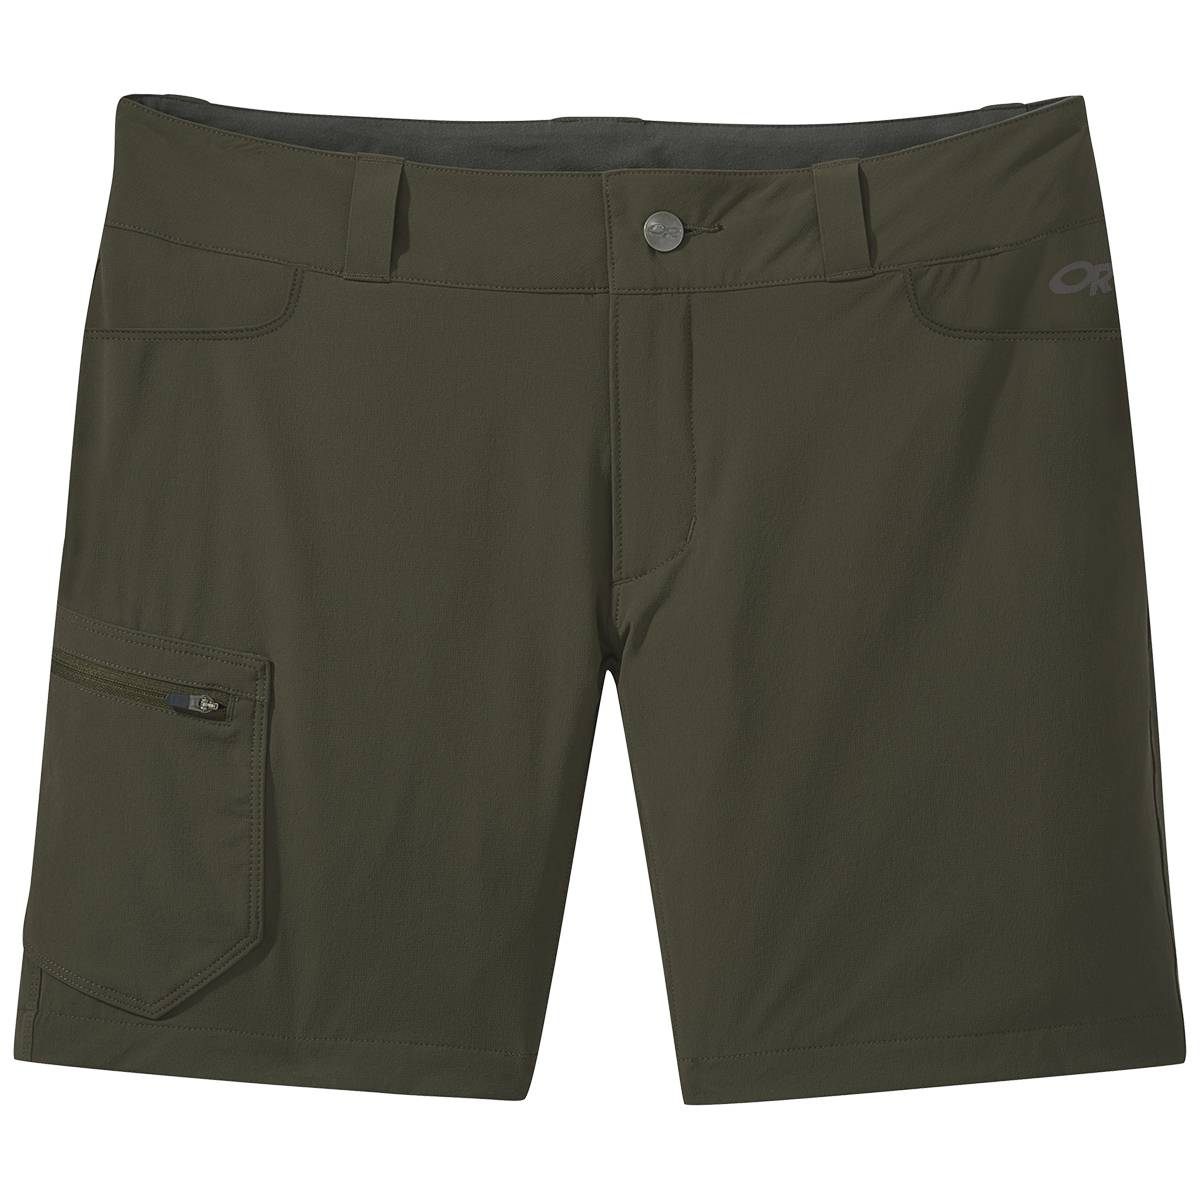 Outdoor Research Women's Ferrosi Shorts - Size 10